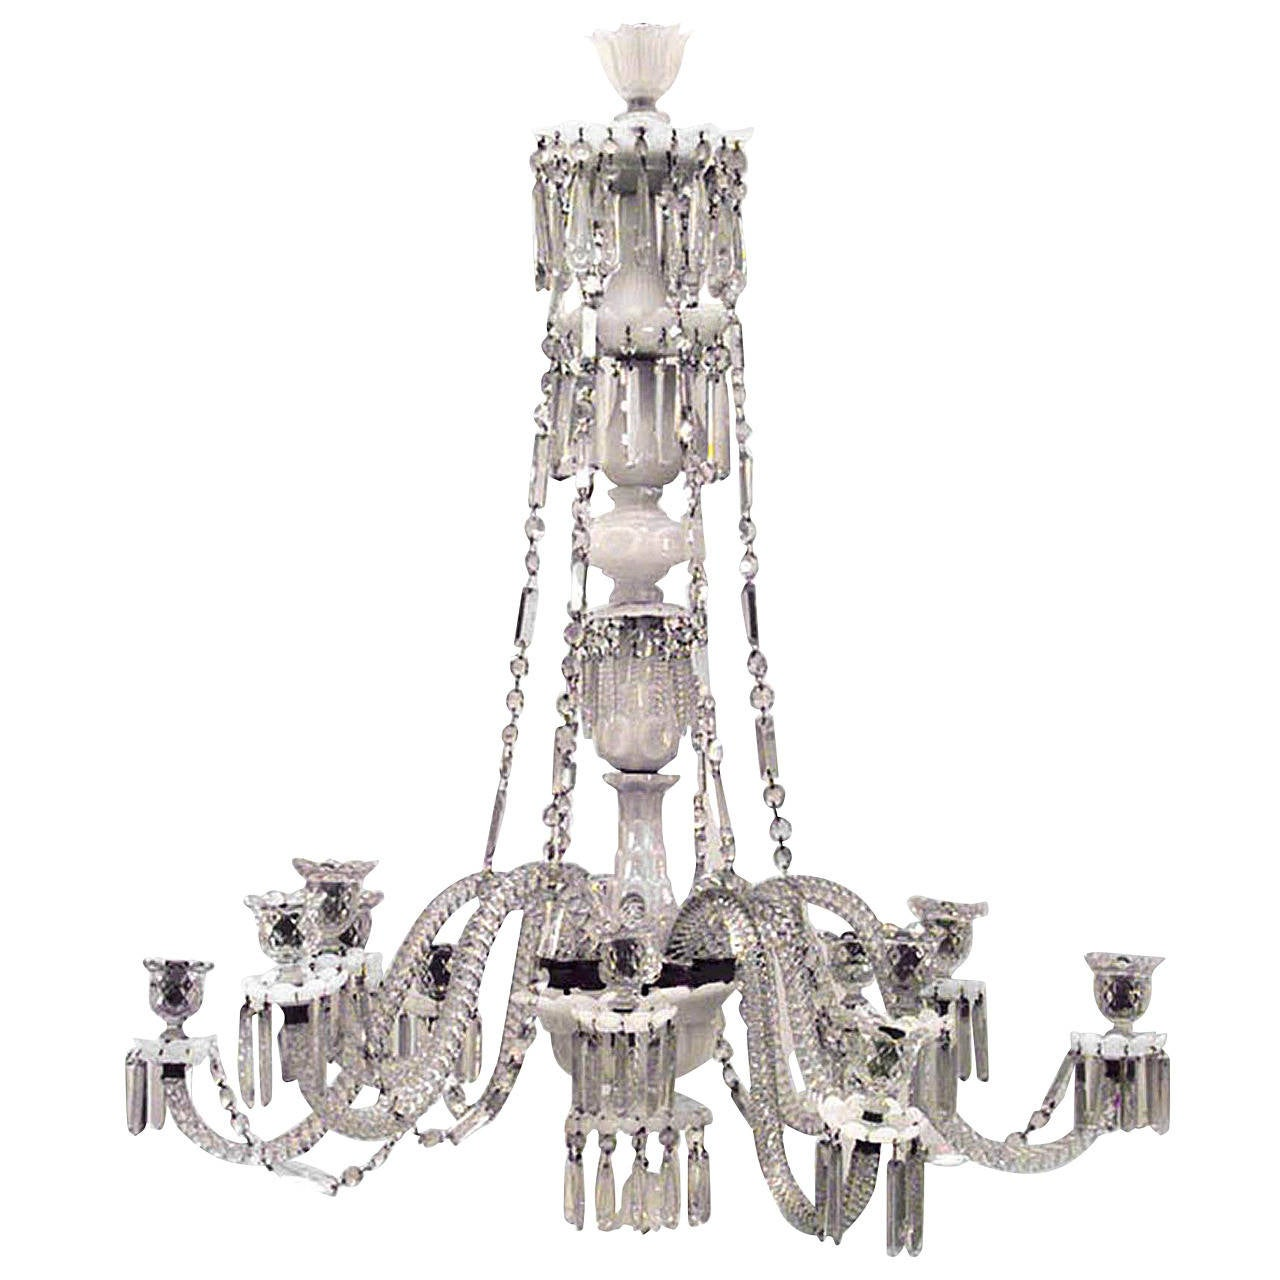 Baccarat chandelier, 19th century